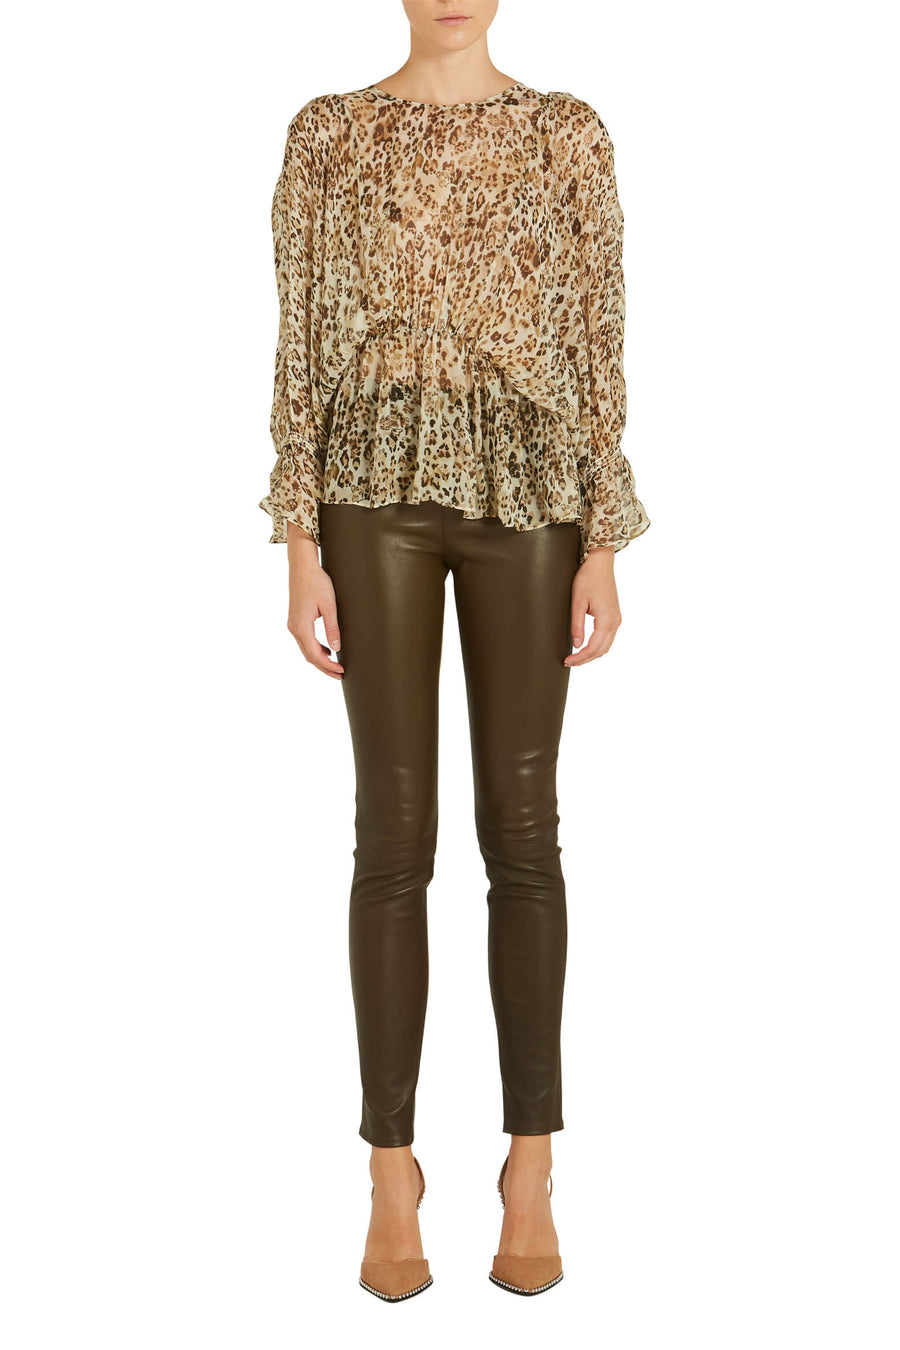 Helmut Lang Leather Legging from The New Trend